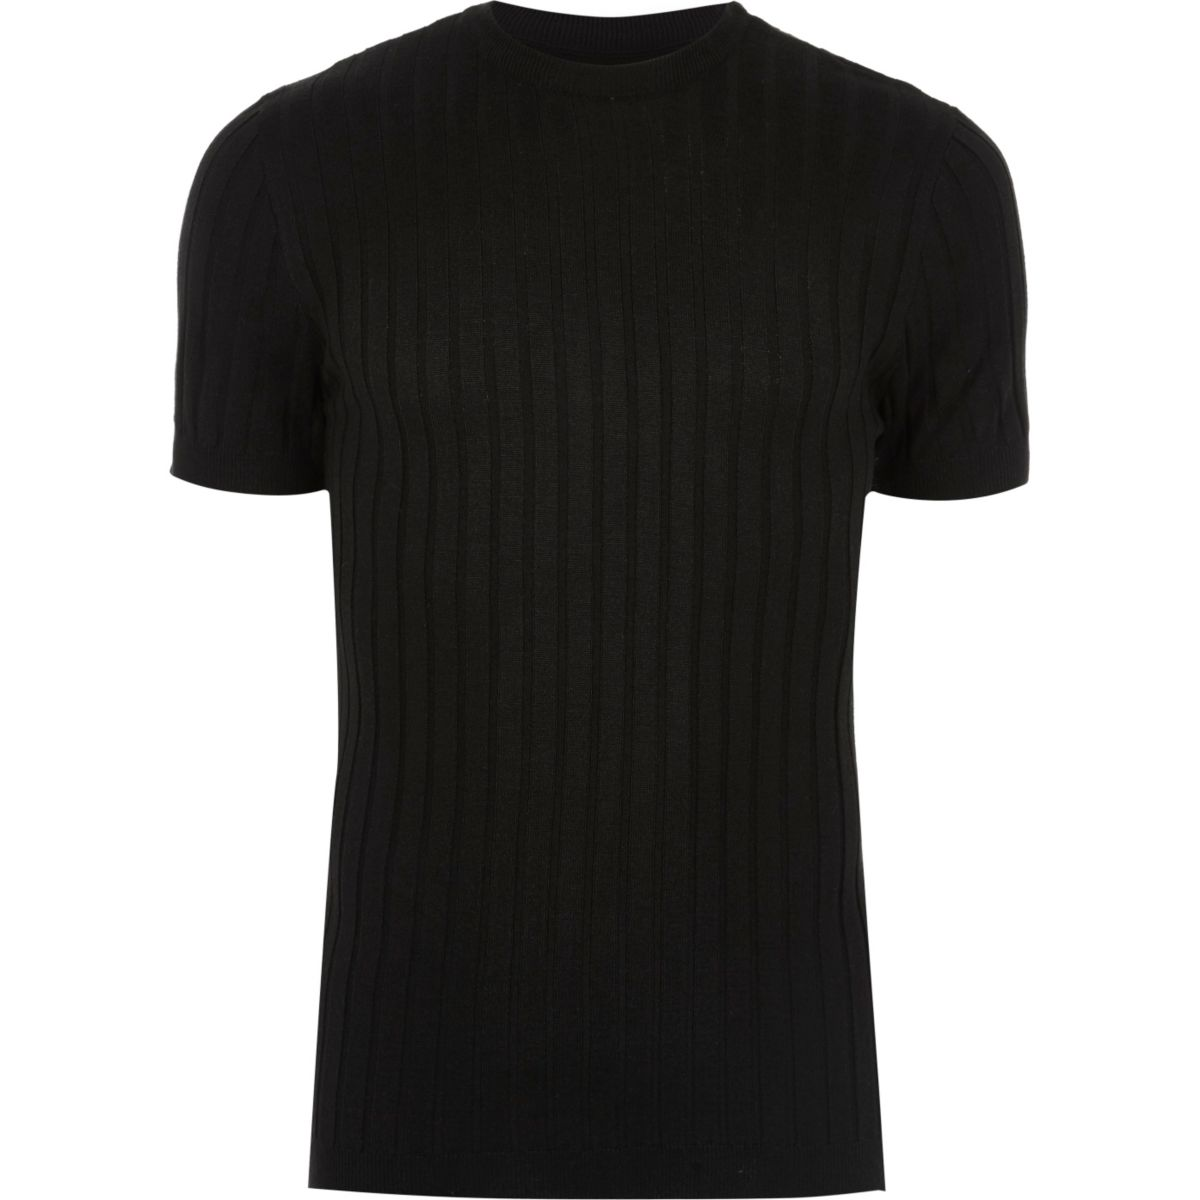 Black ribbed muscle fit T-shirt